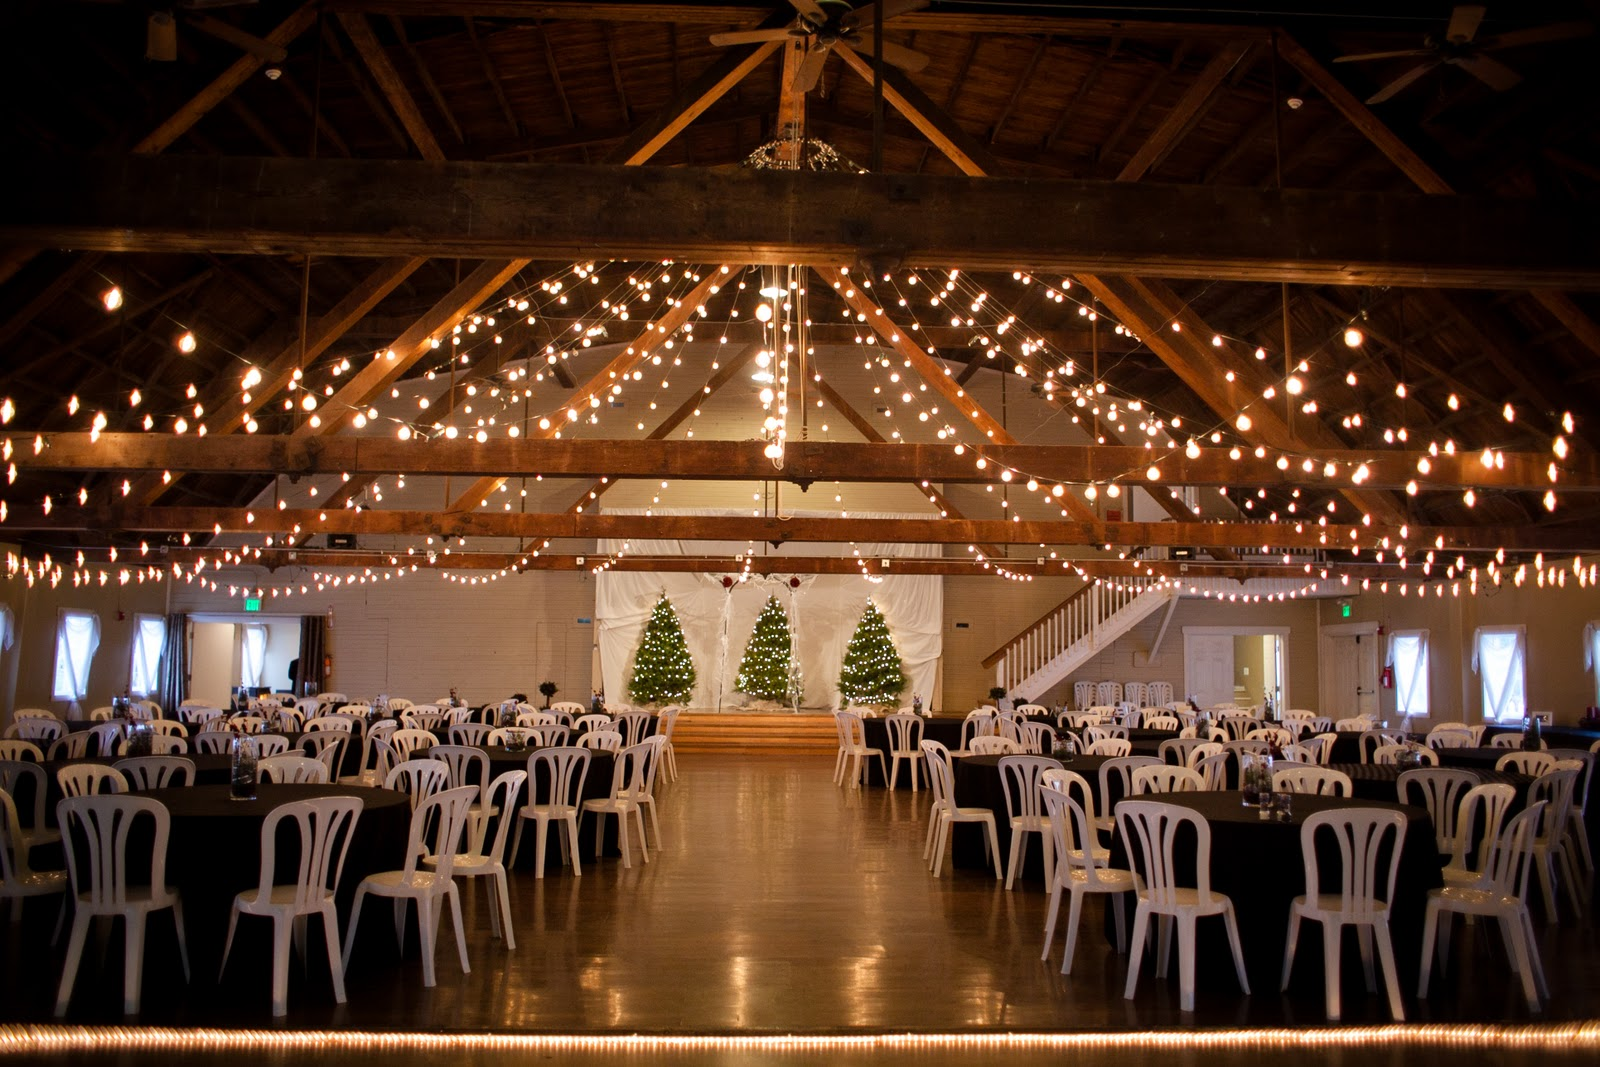 December Christmas Barn Wedding Independence Or Just 10min From M Oregon